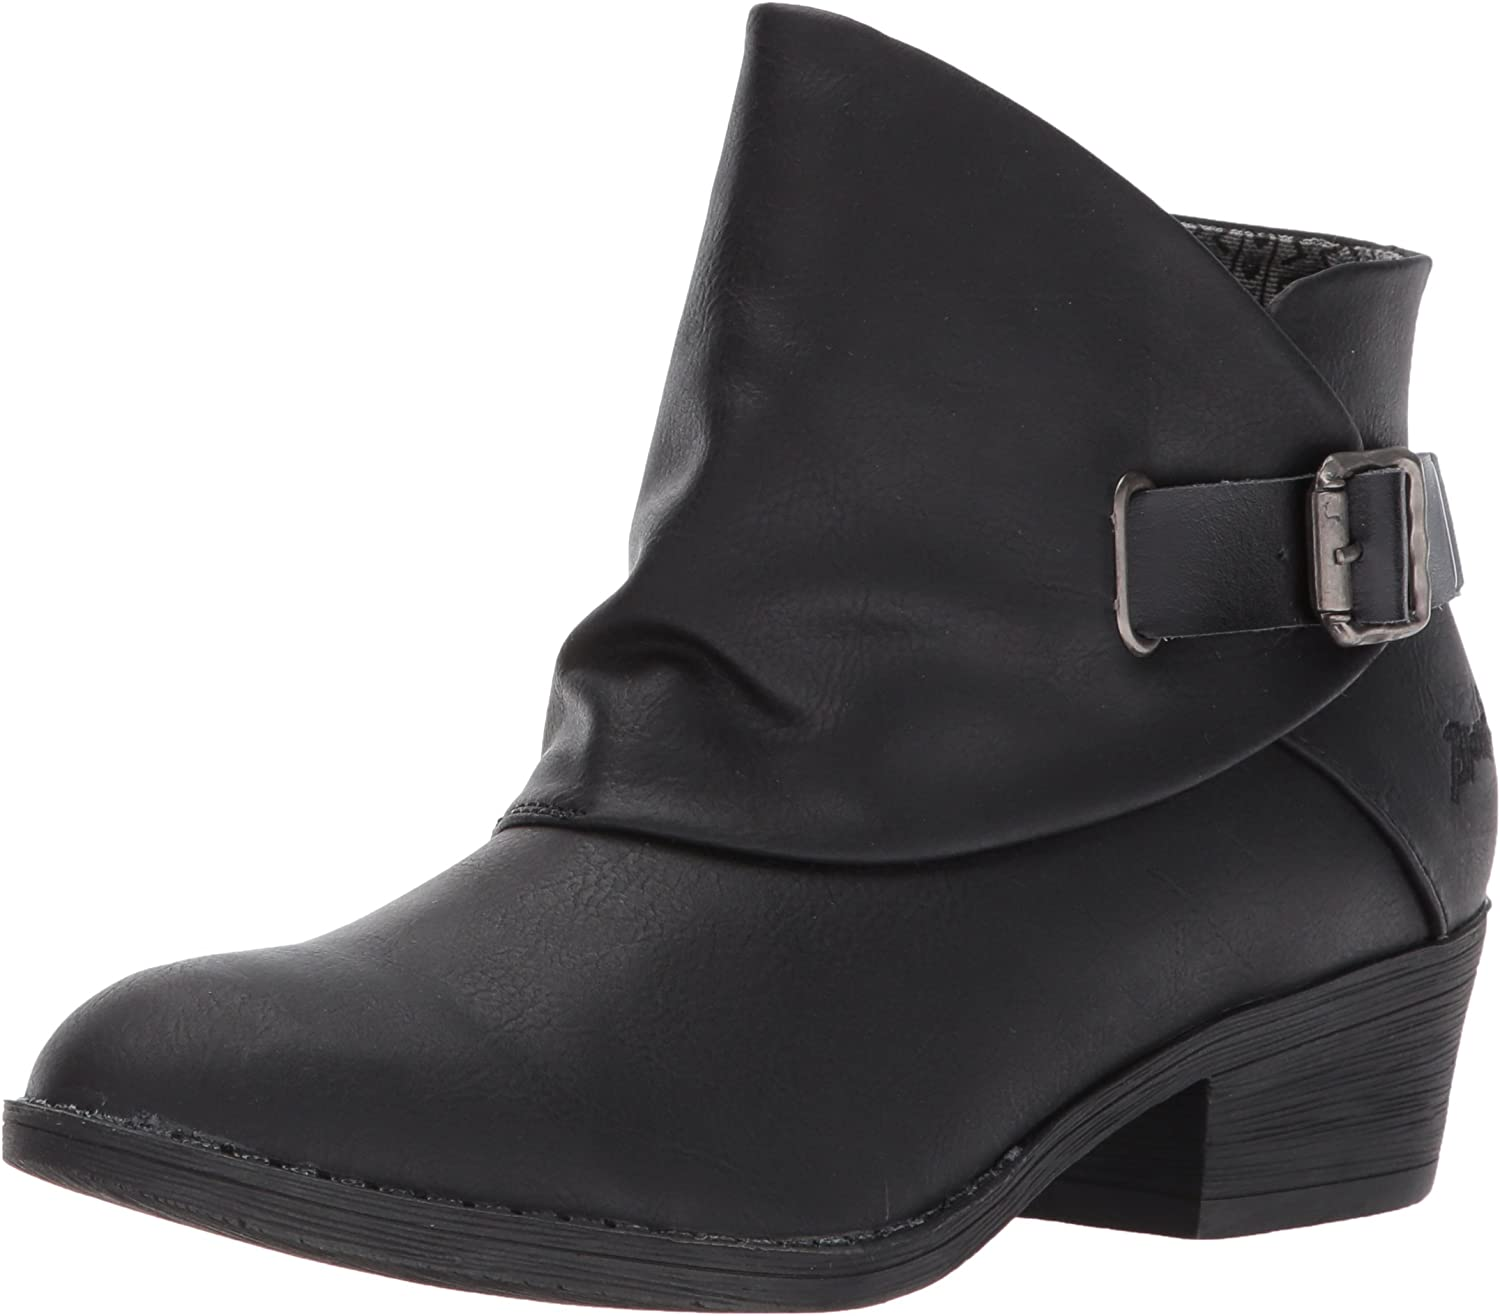 Blowfish Women's Sill Ankle Boots